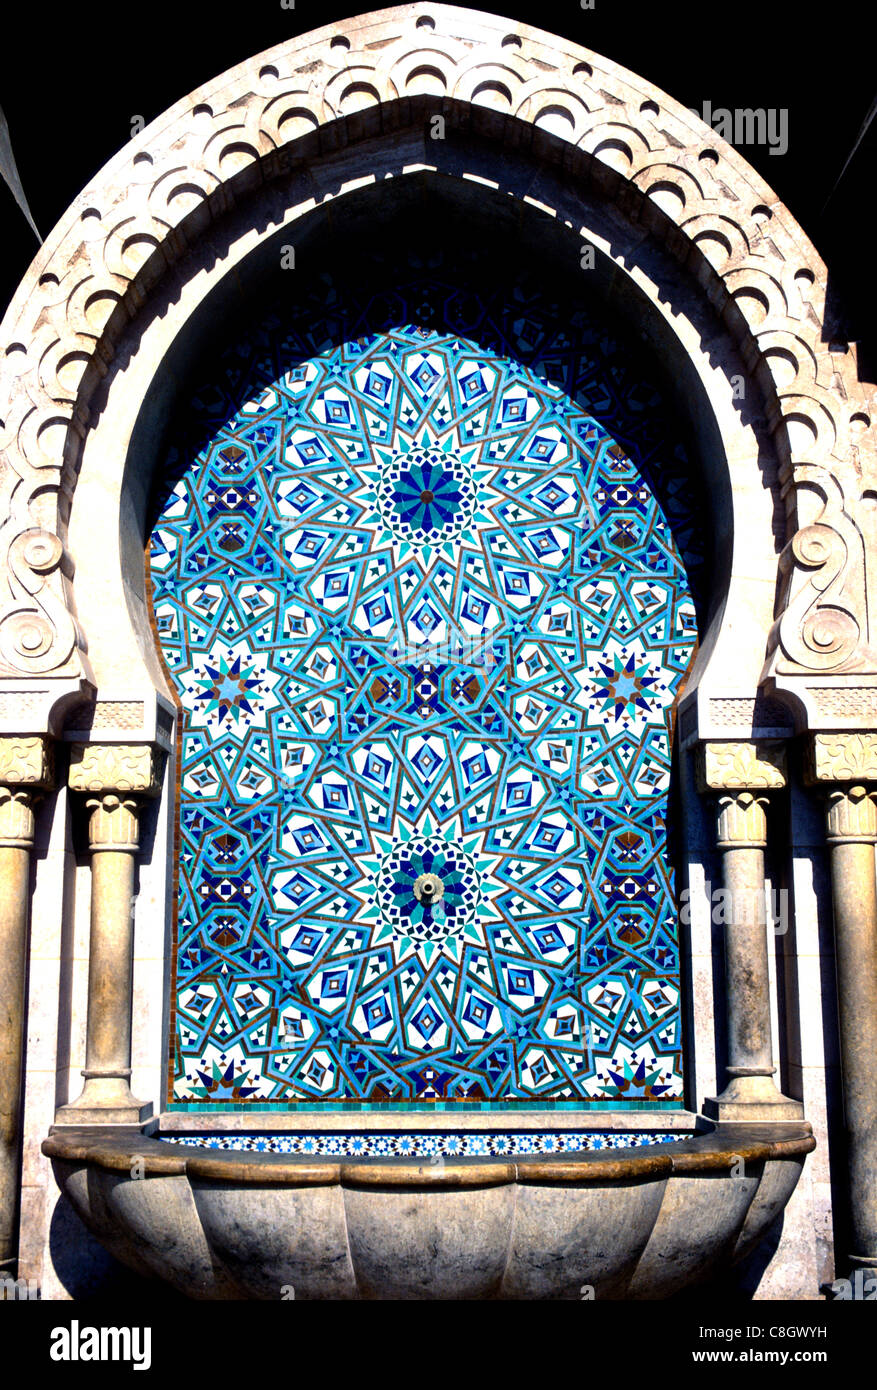 Basin in the courtyard of the Hassan II Mosque Casablanca Morocco. - Stock Image